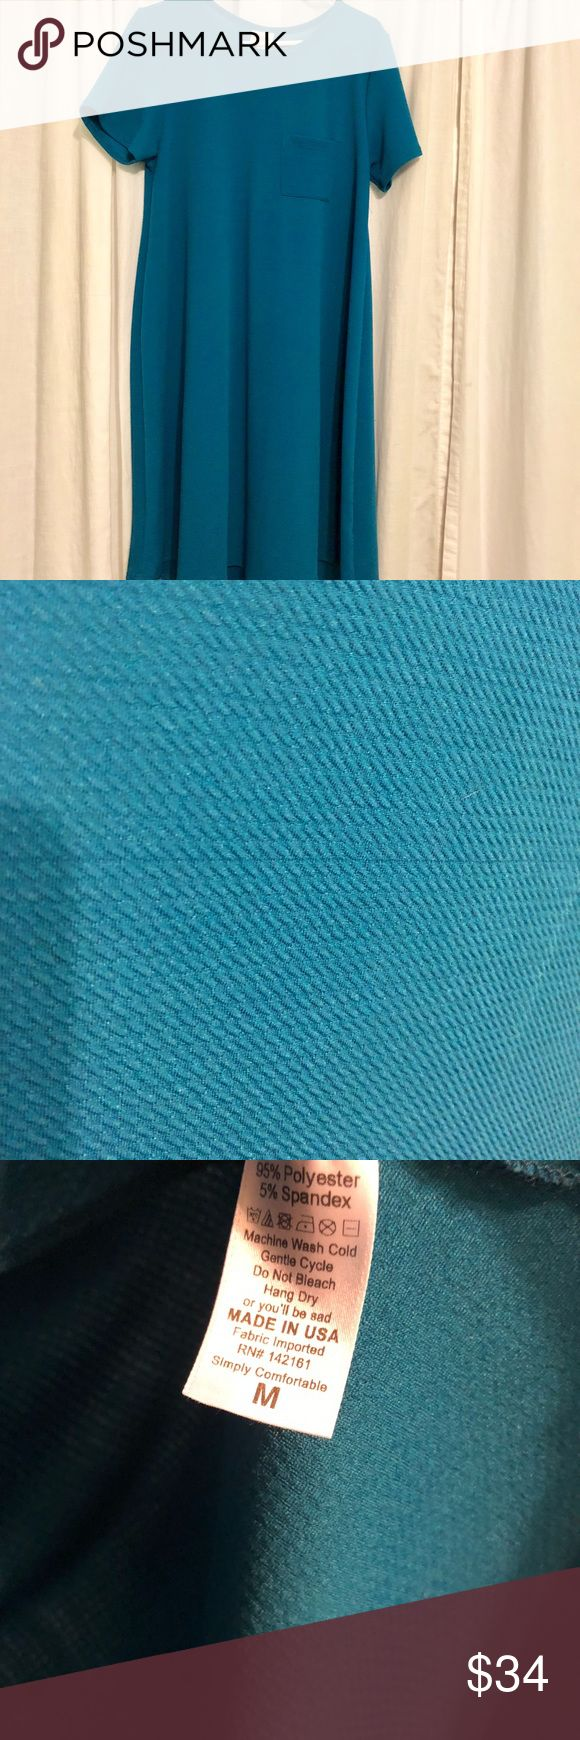 Lularoe Peacock Blue Waffle Weave Carly Medium Perfect condition / worn once / no signs of wear/pilling / laundered per llr instructions LuLaRoe Dresses High Low